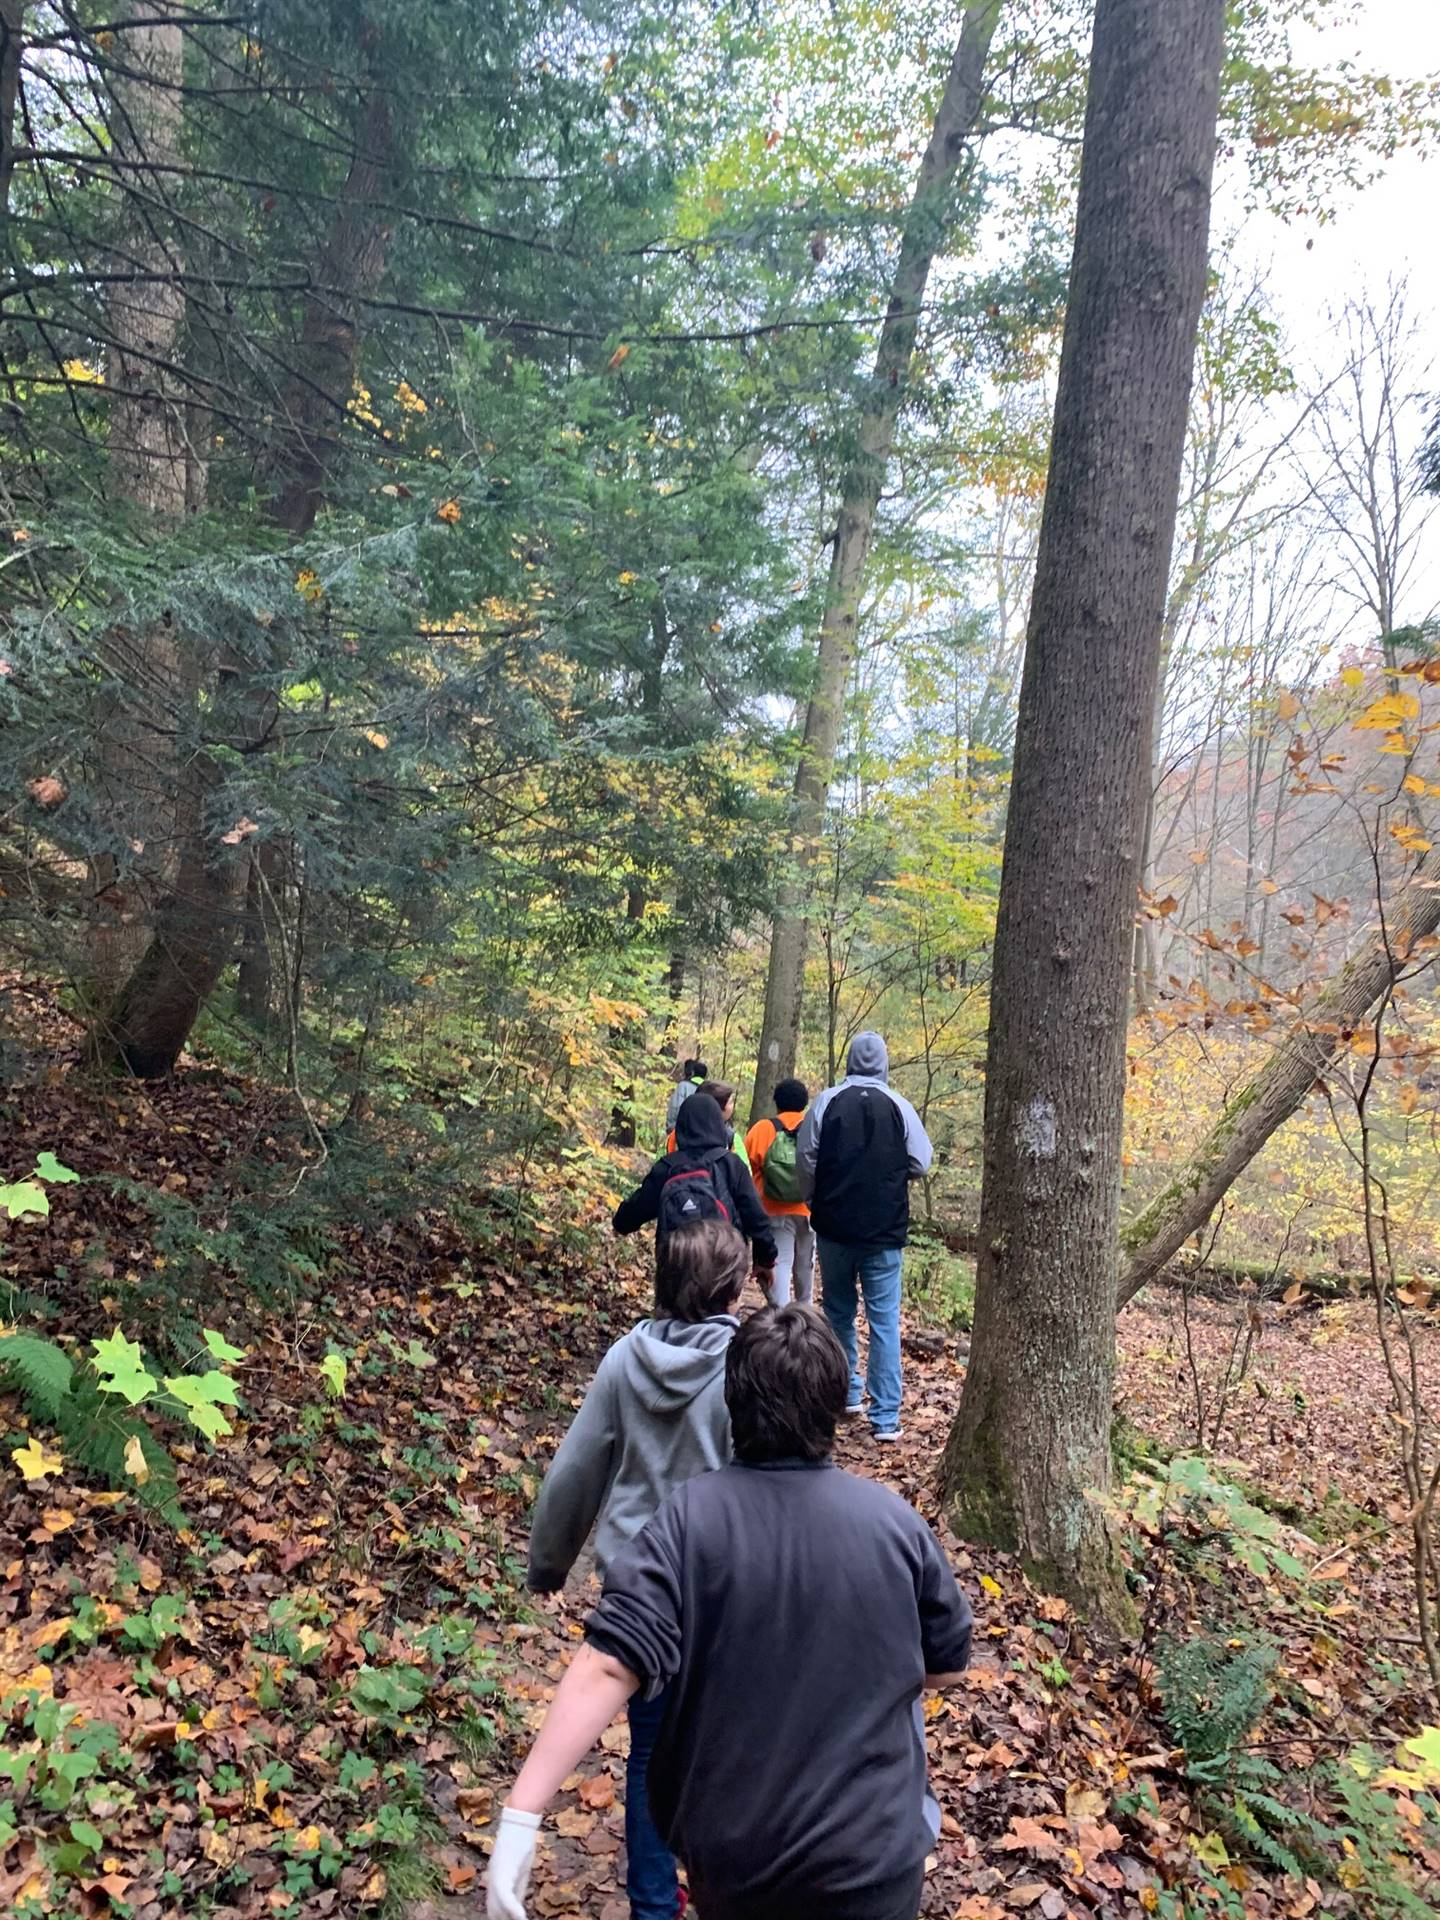 More of Mohican Trip with Mr. Rapp's Class